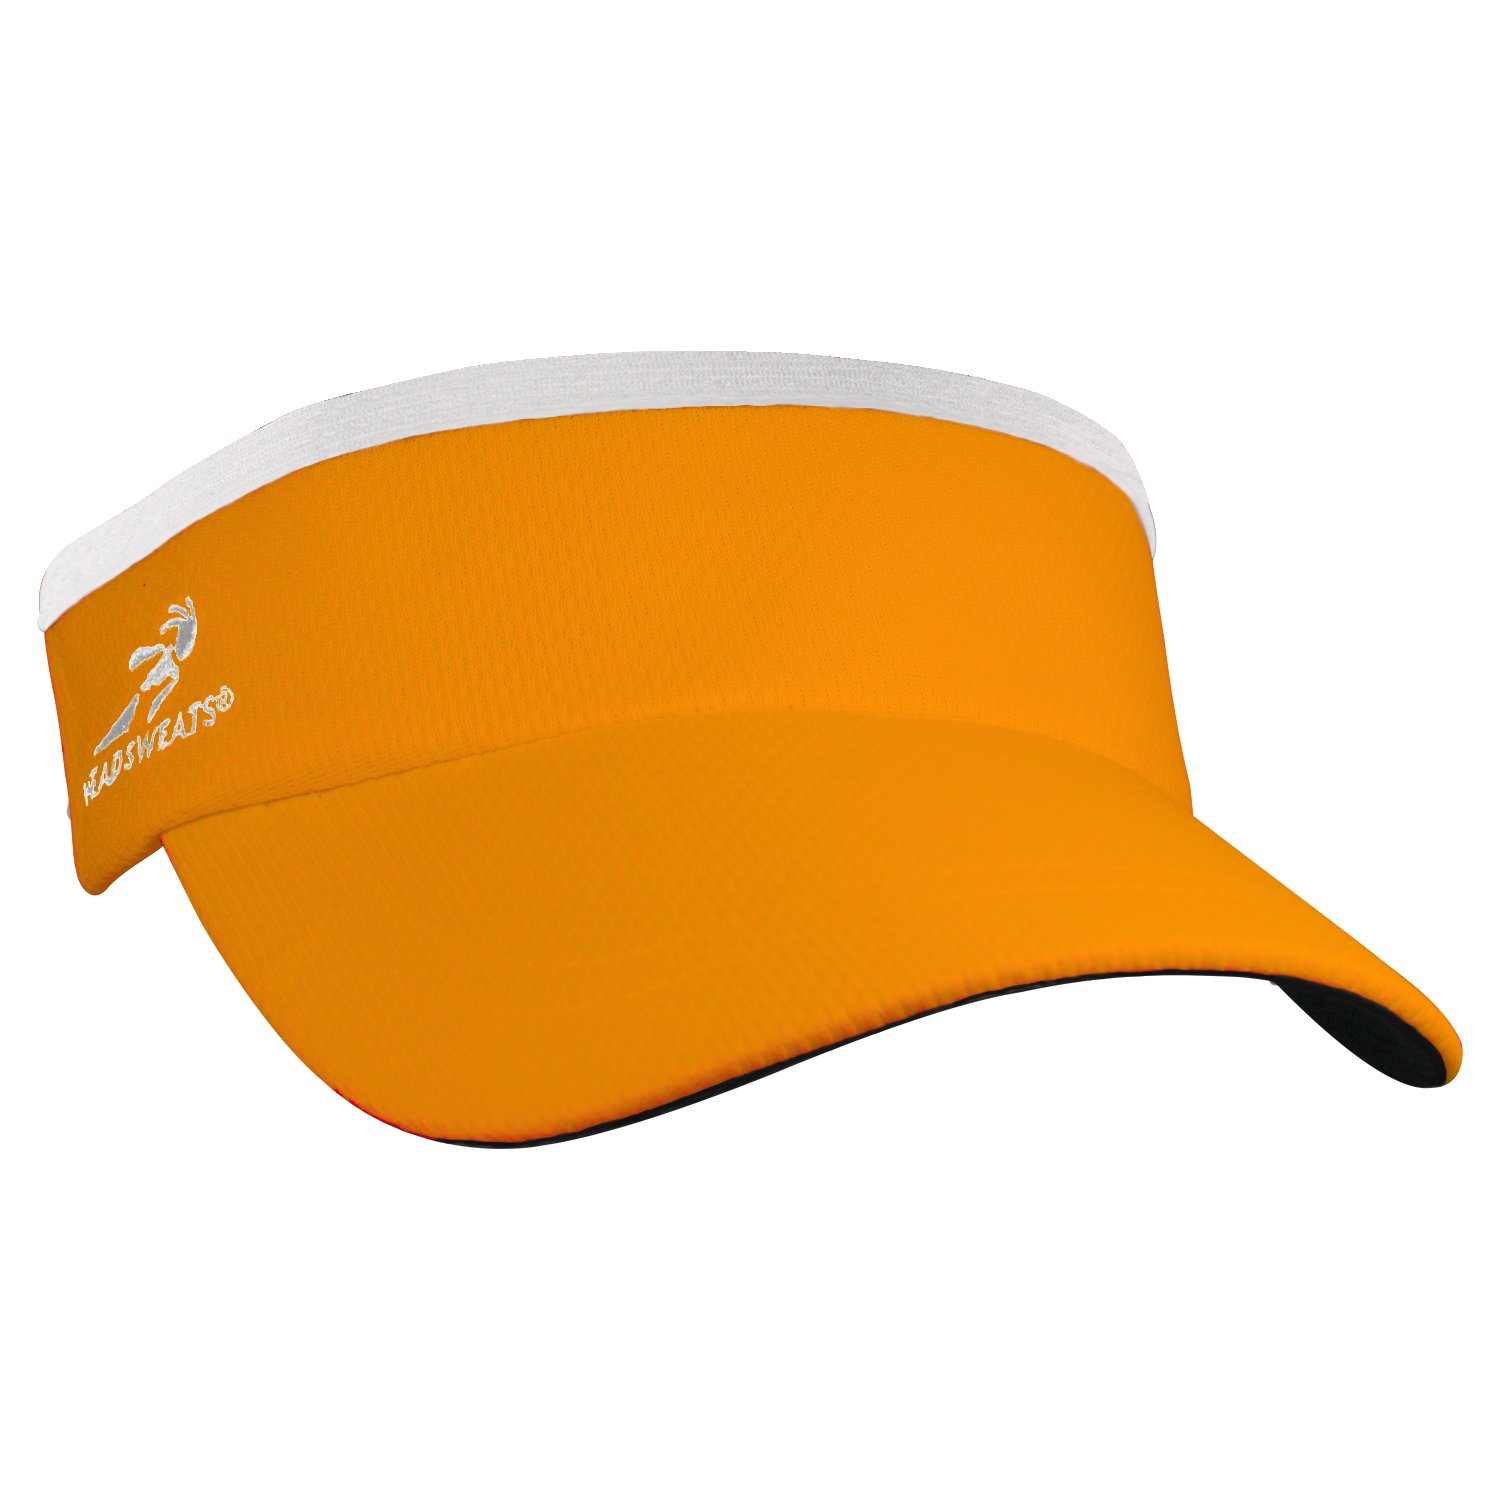 Headsweats Supervisor Sun/Race/Running/Outdoor Sports Visor, Orange, One Size by Headsweats